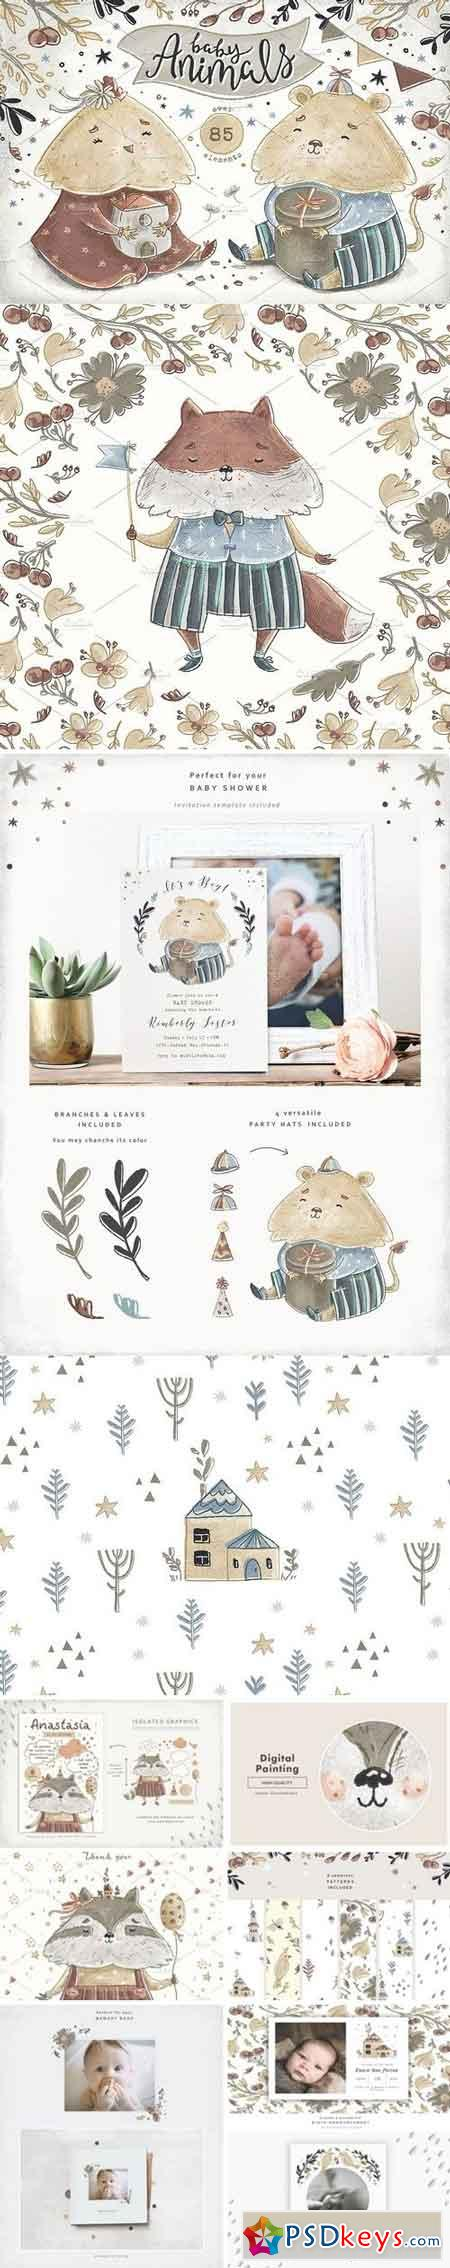 Baby Animals Nursery Art 1521925